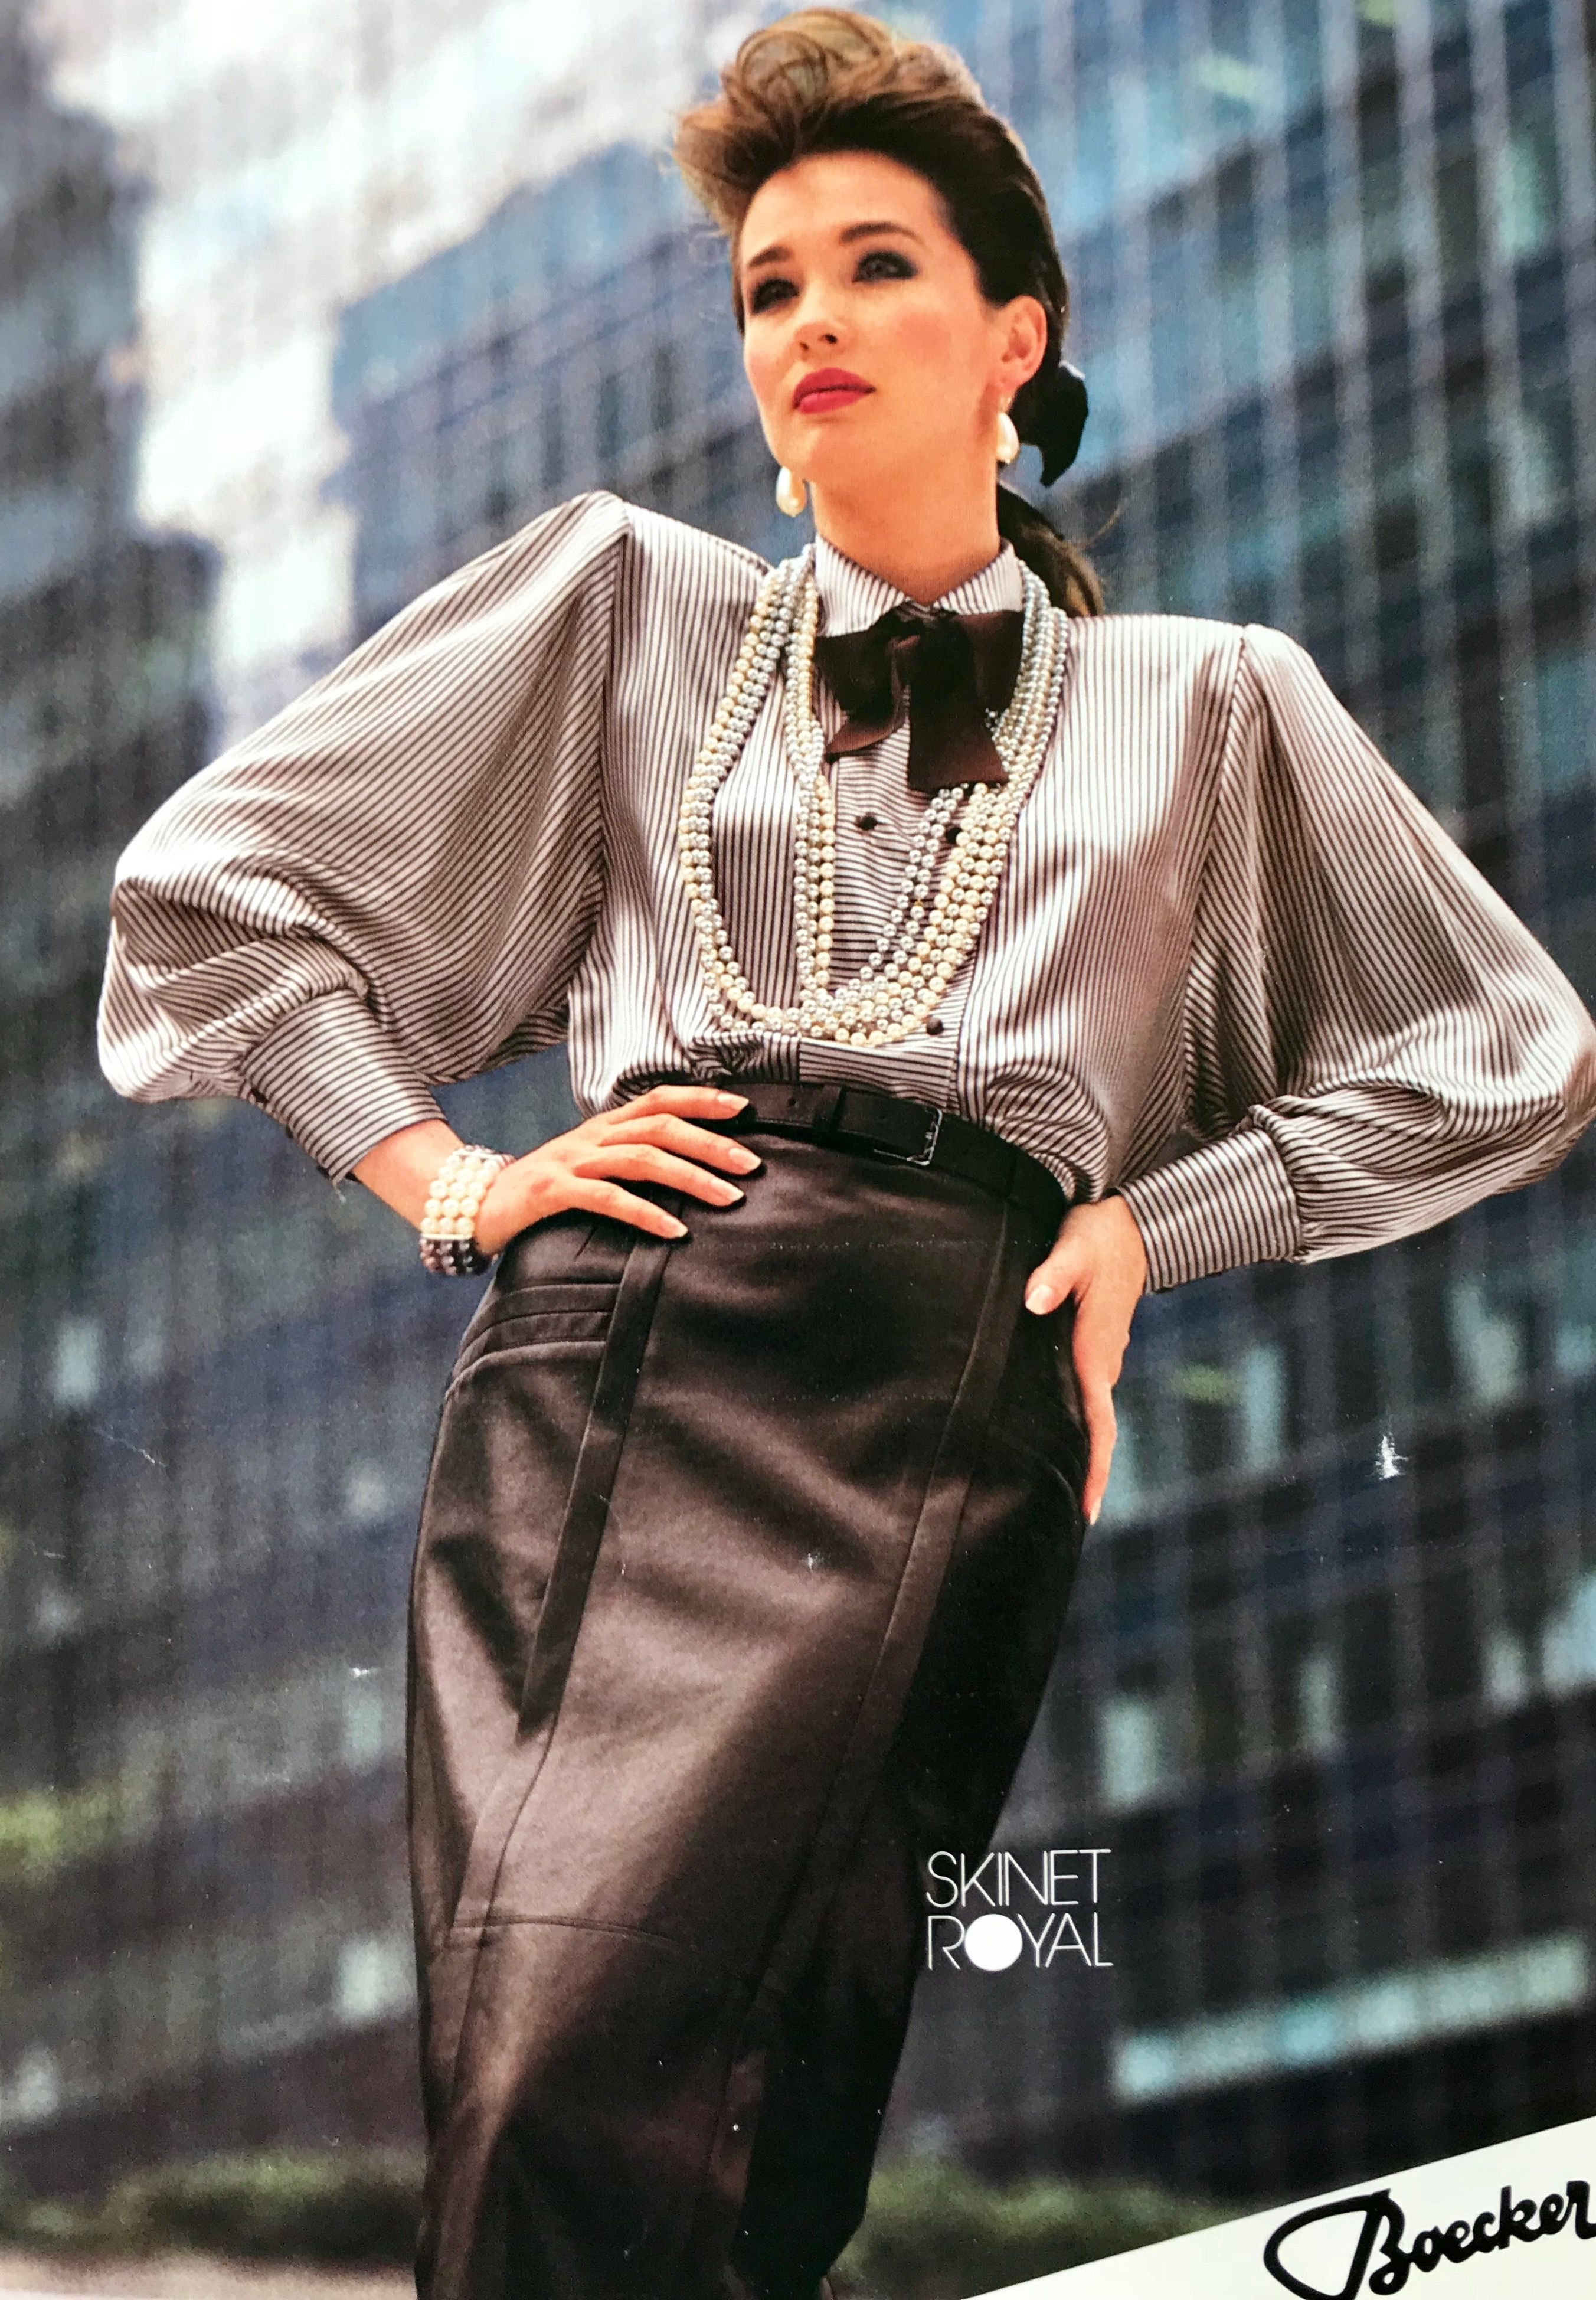 Pin by Emma Satin on Satin and silk blouses   Blouse, Skirts, Dresses 623afd7d6e